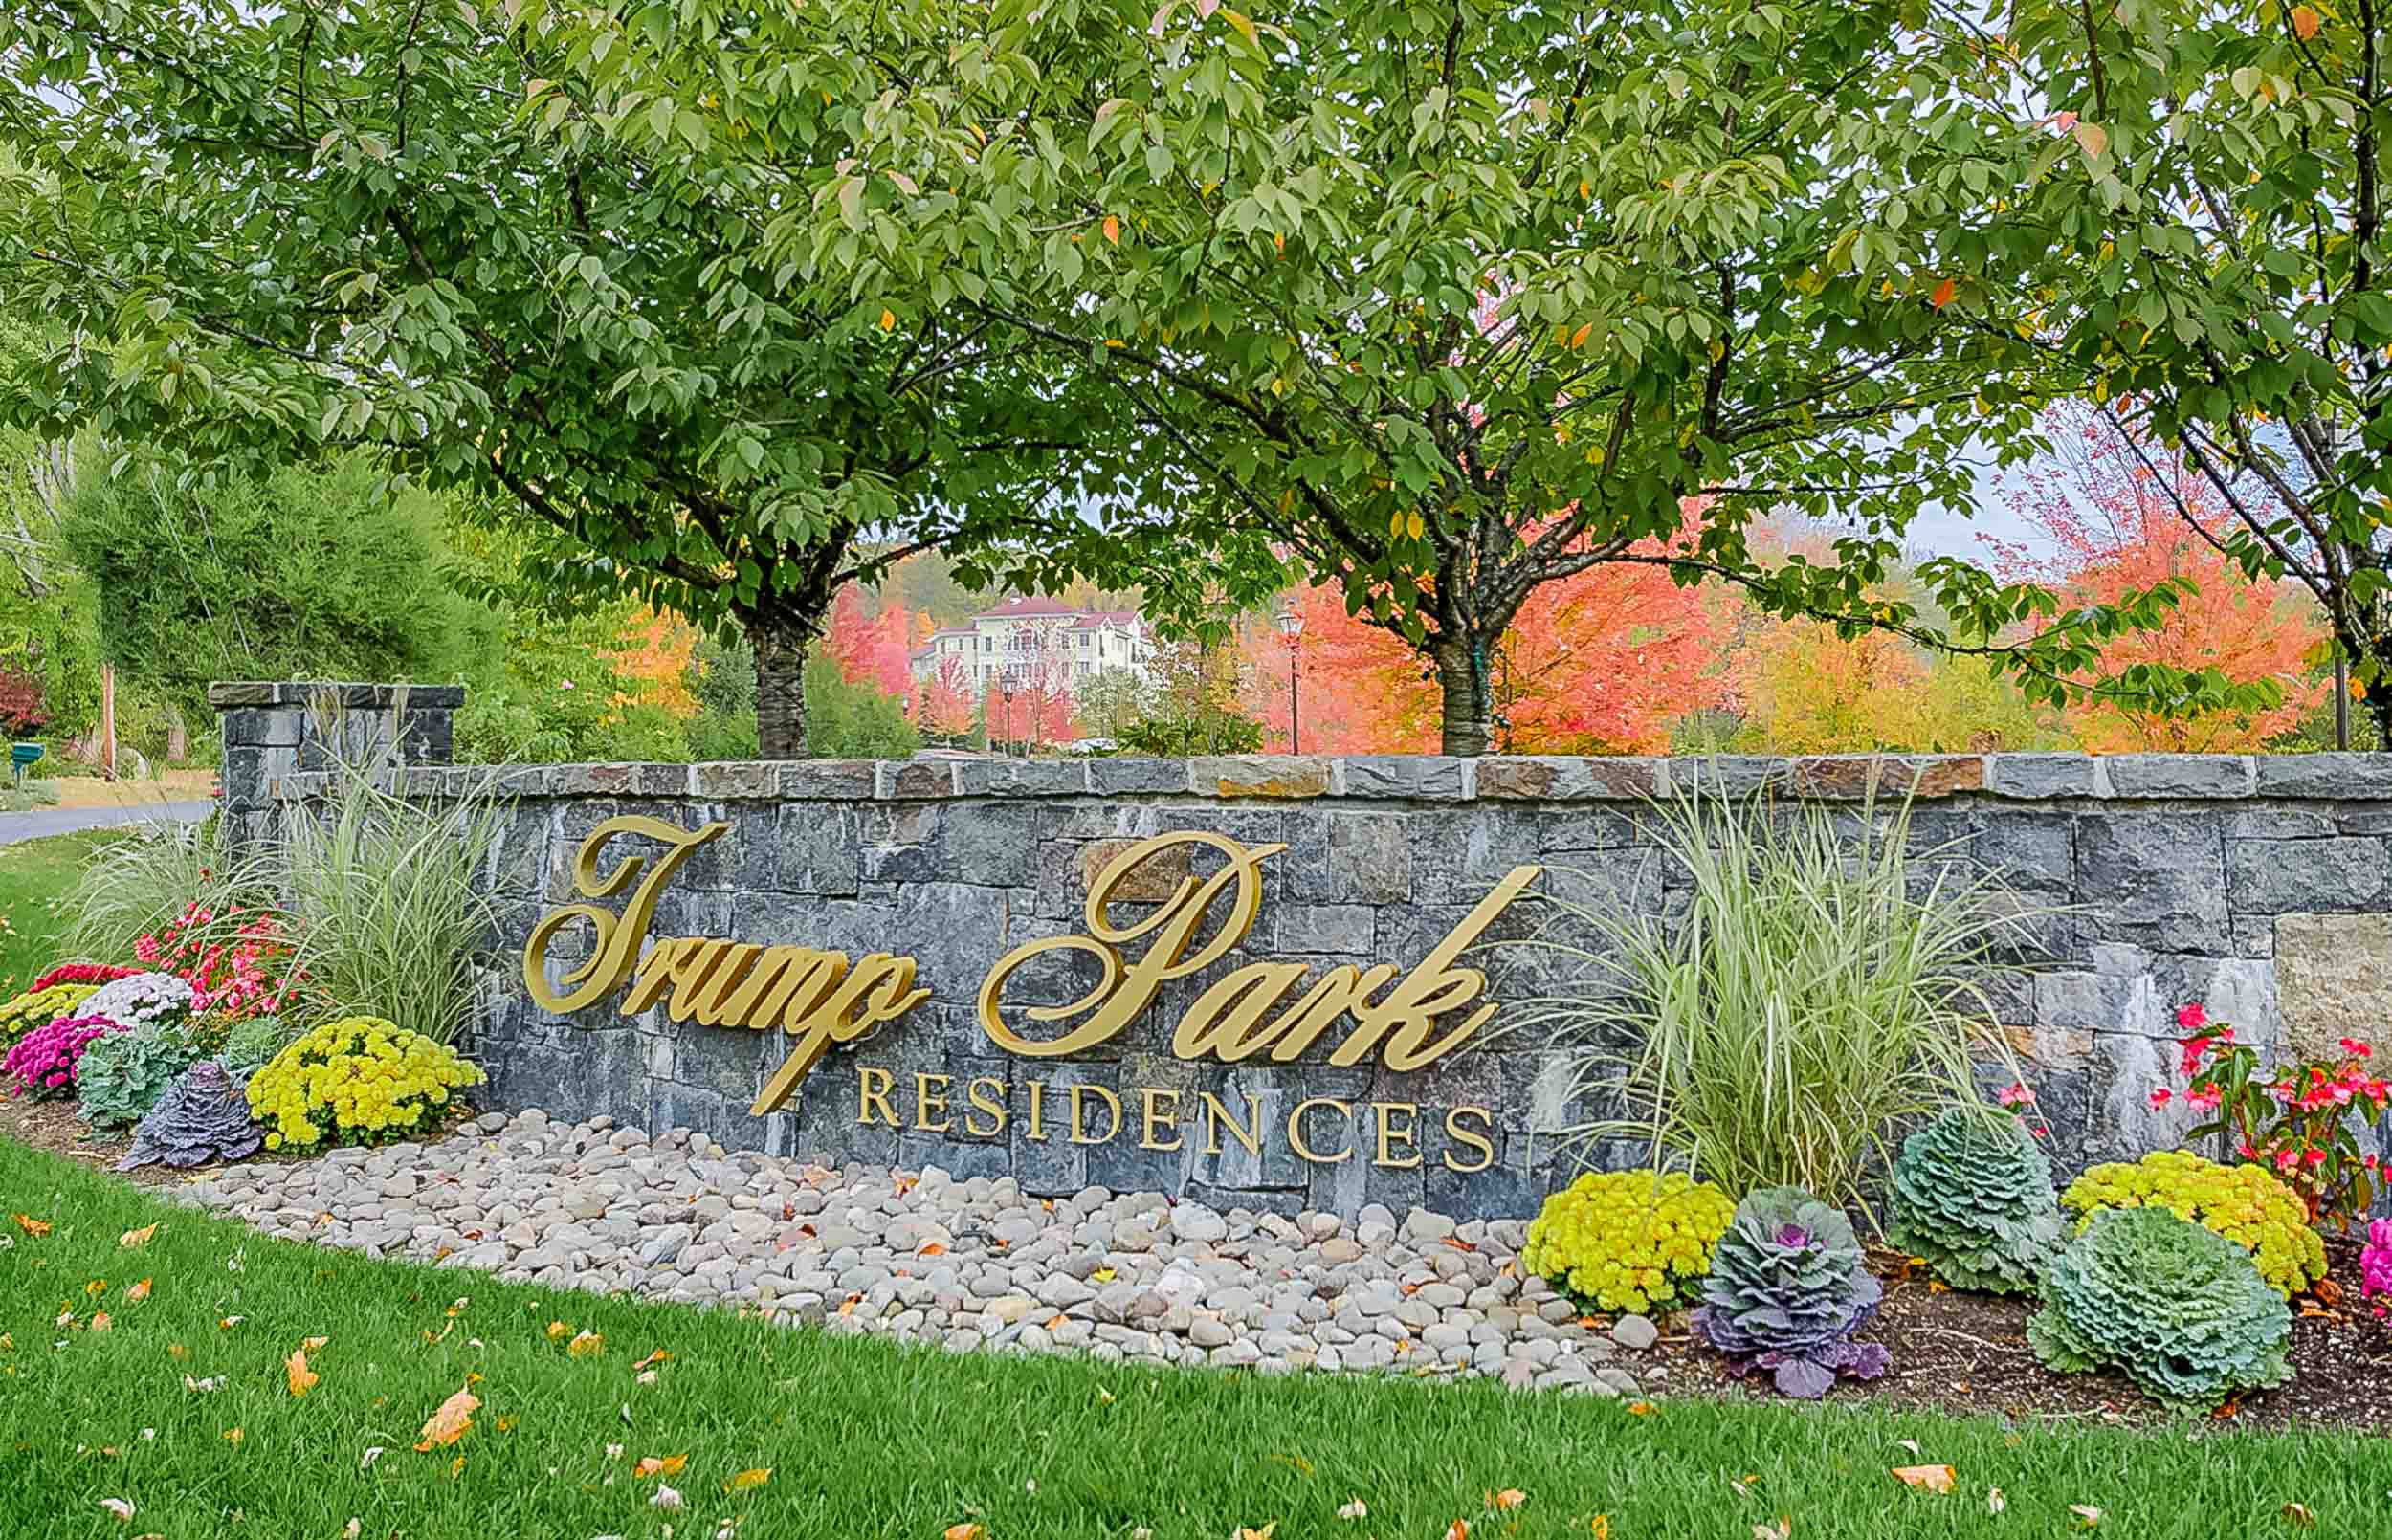 Trump Park in Shrub Oak has Luxury Condos for Sale and to rent.